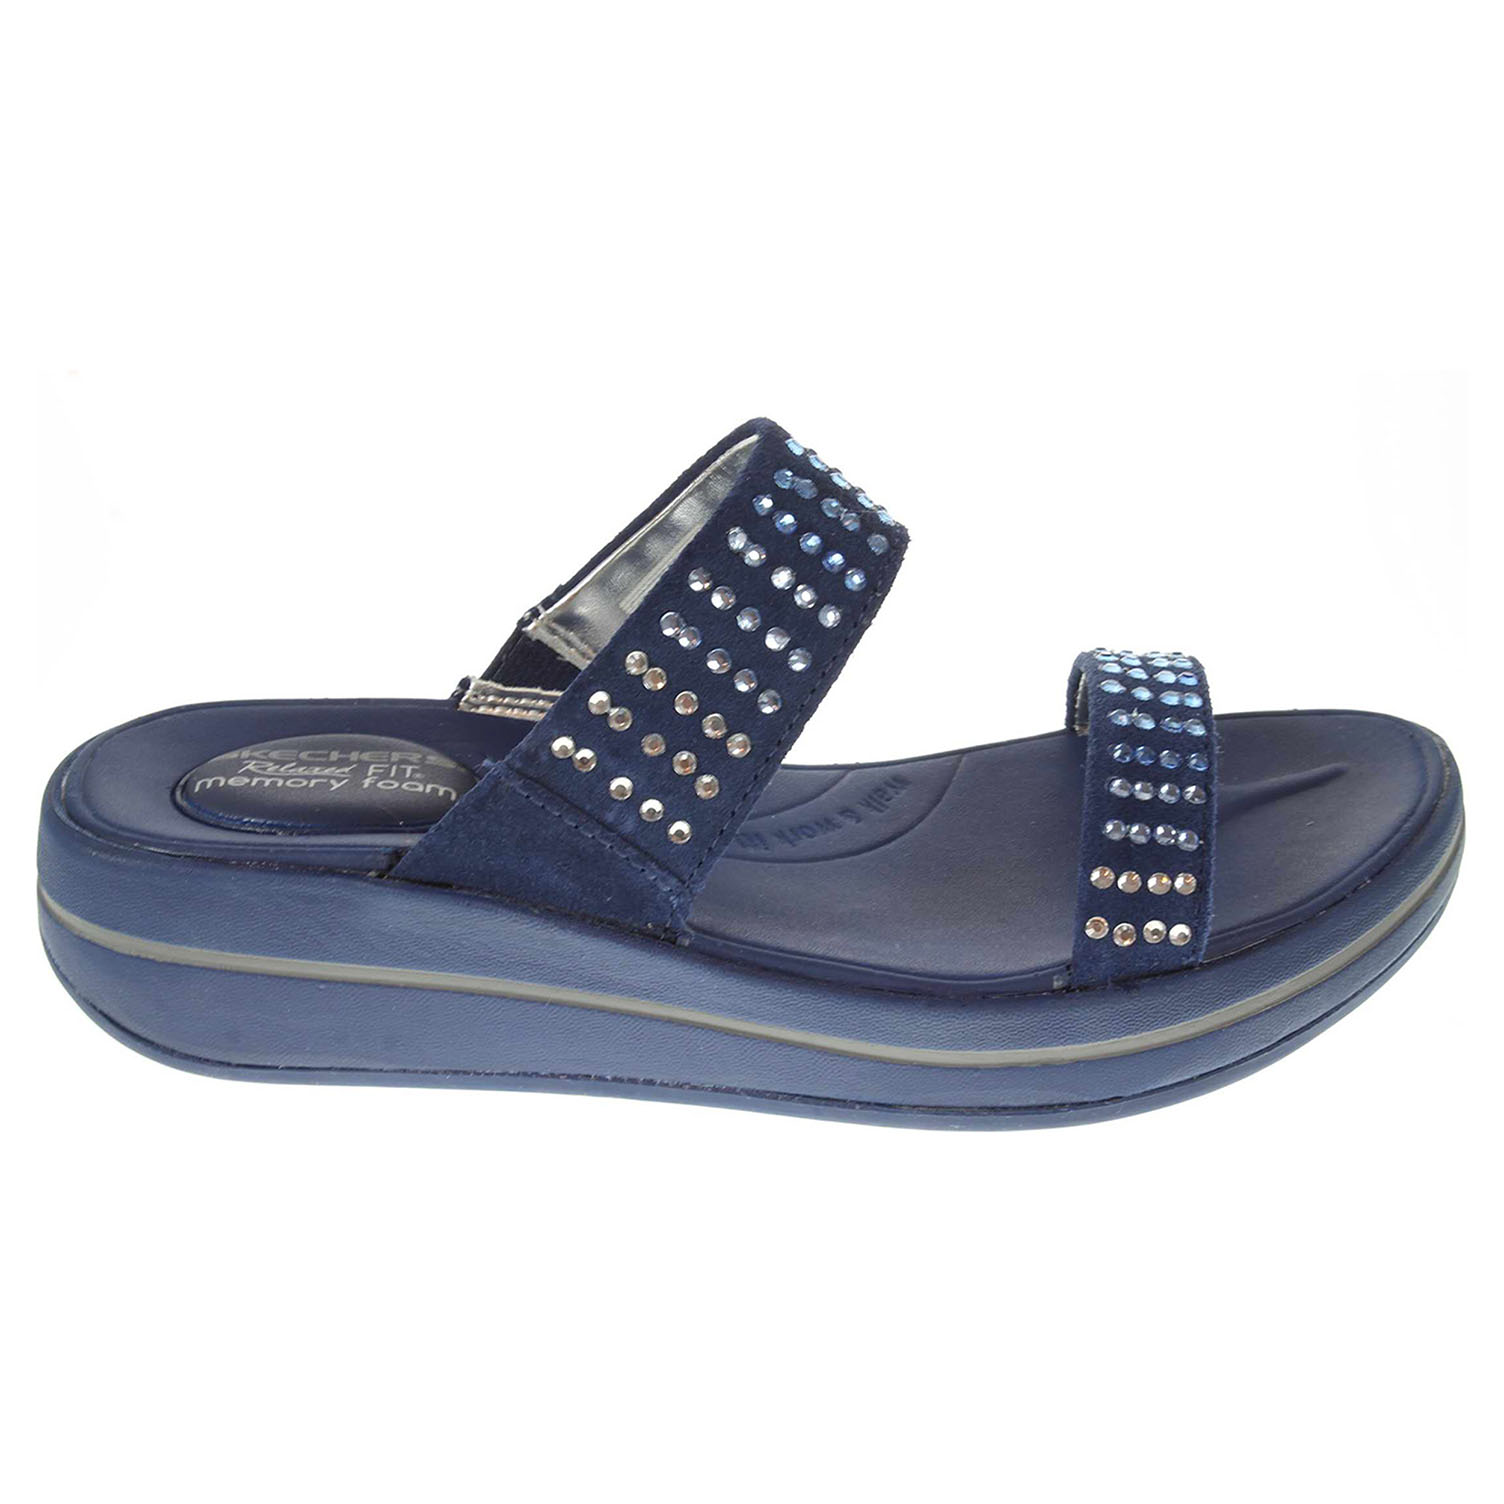 Skechers Upgrades Twinks modrá 37